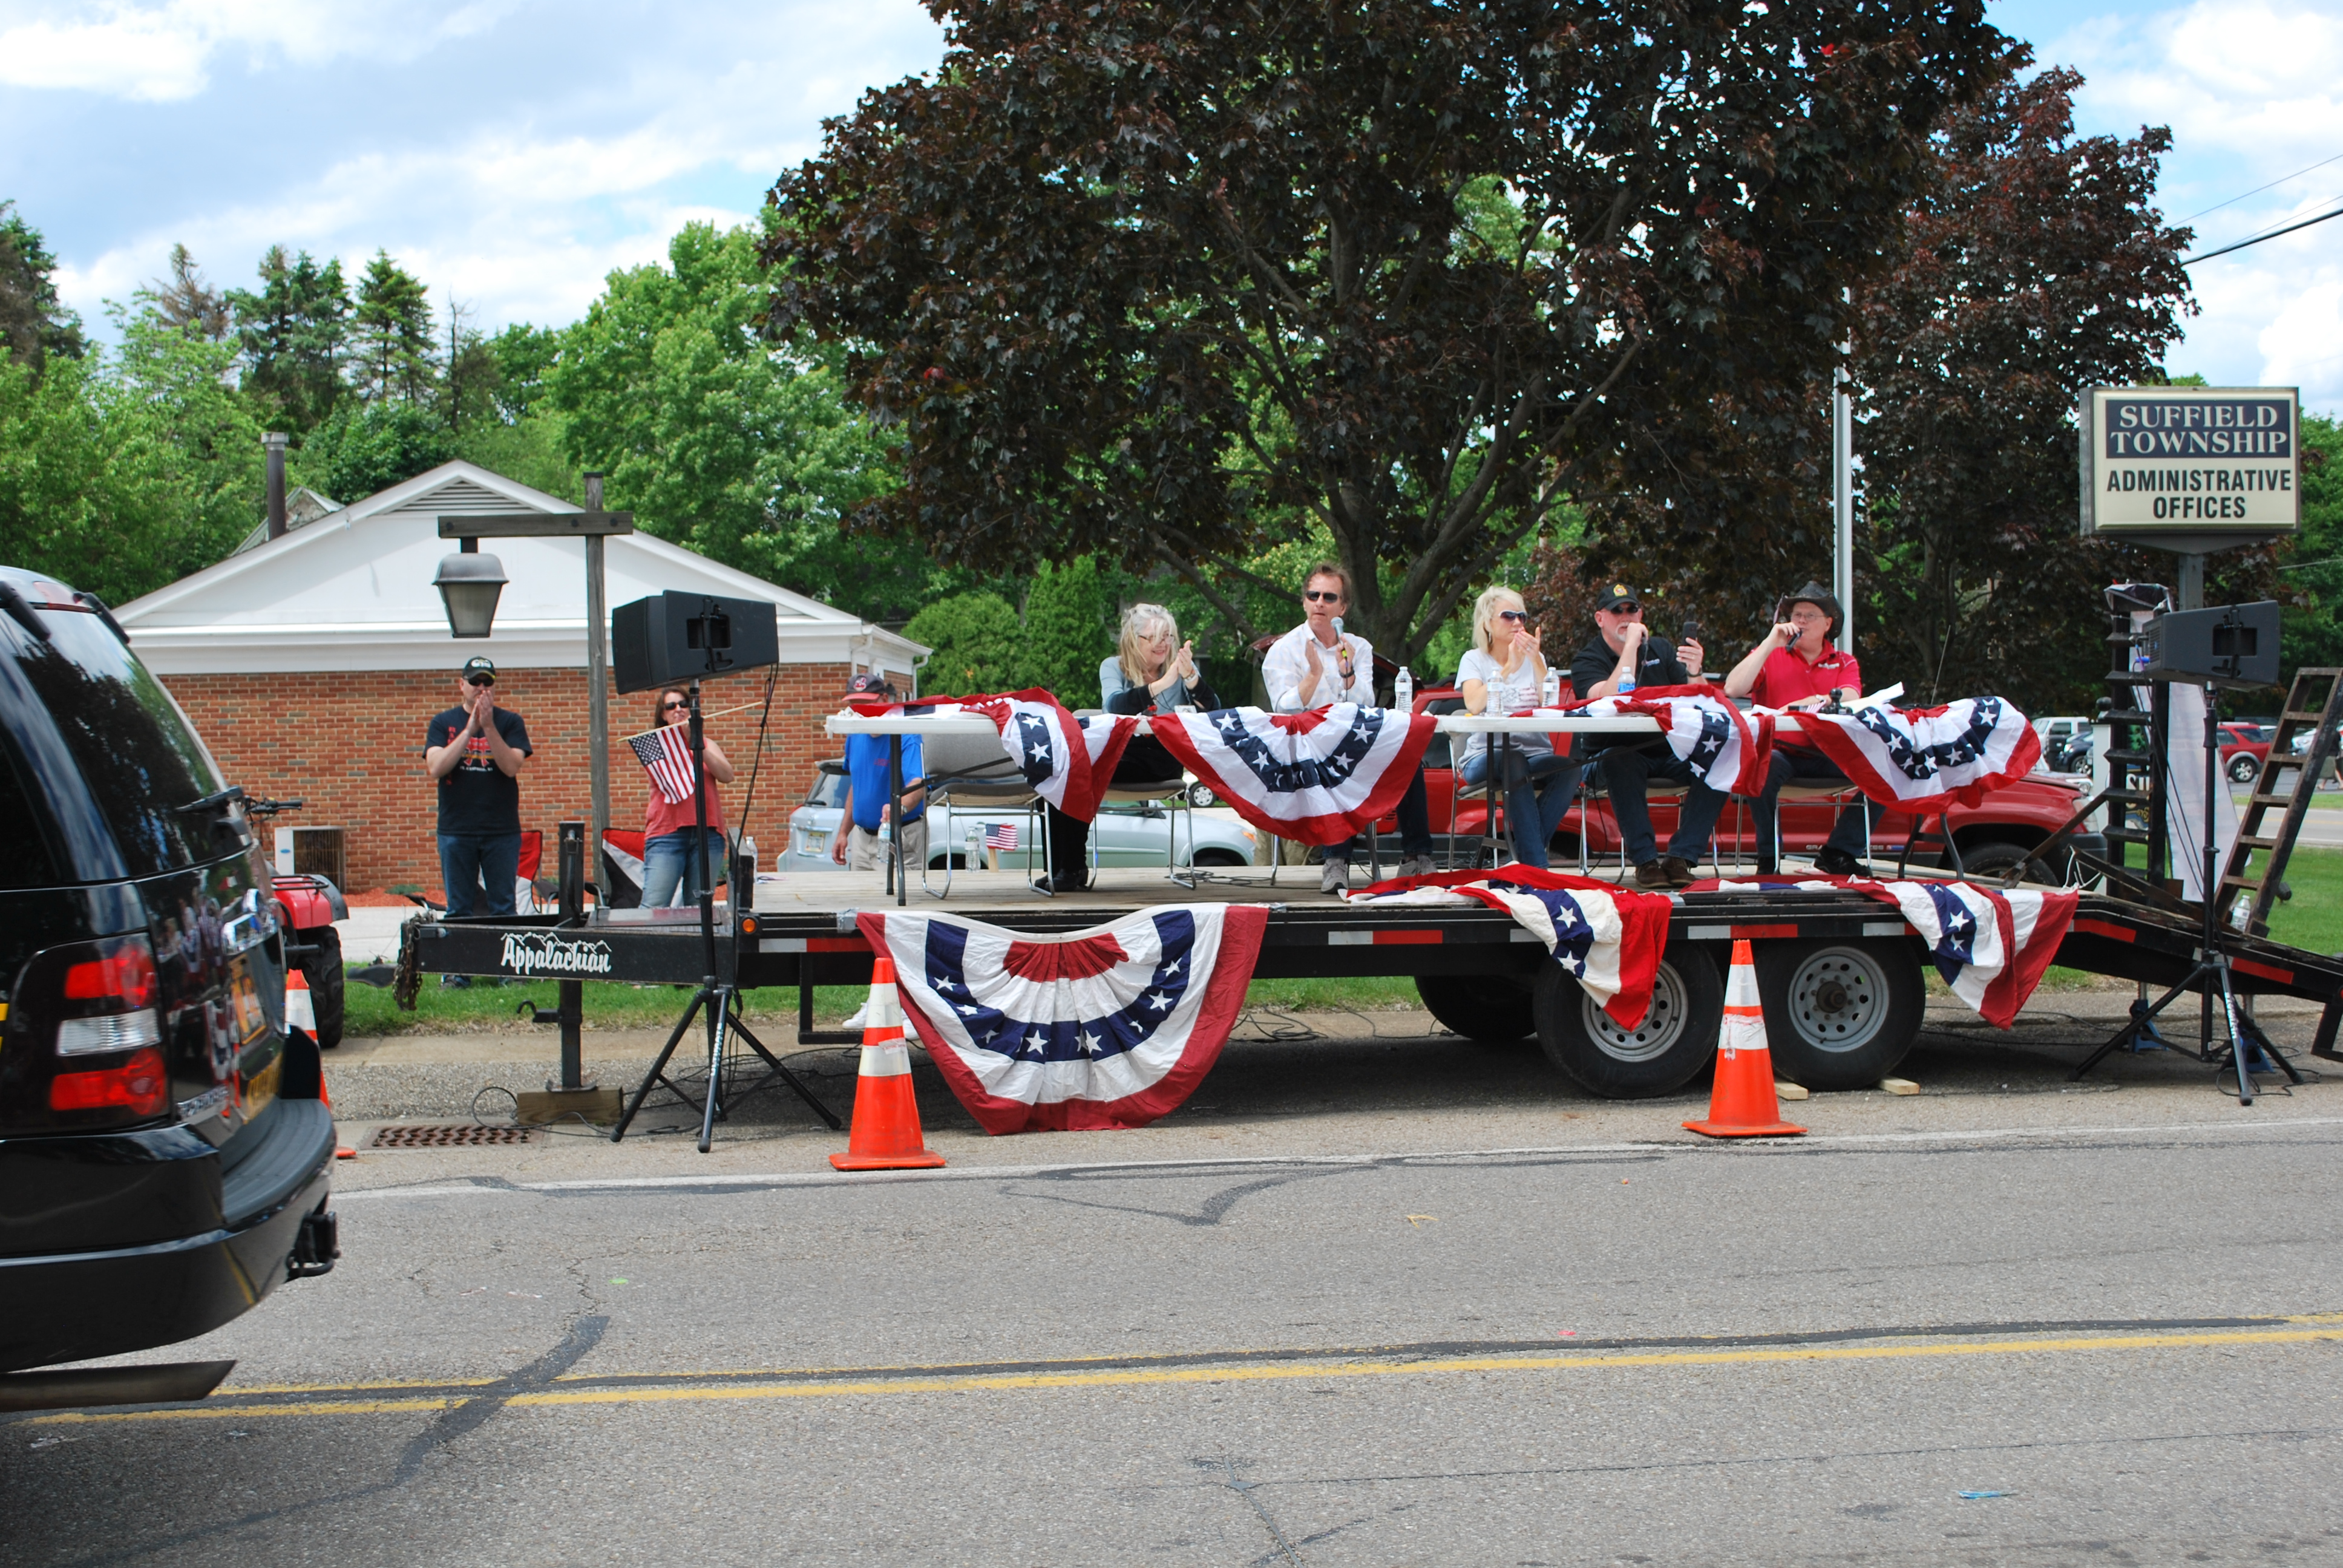 Suffield League Parade announcers 05 29 2017